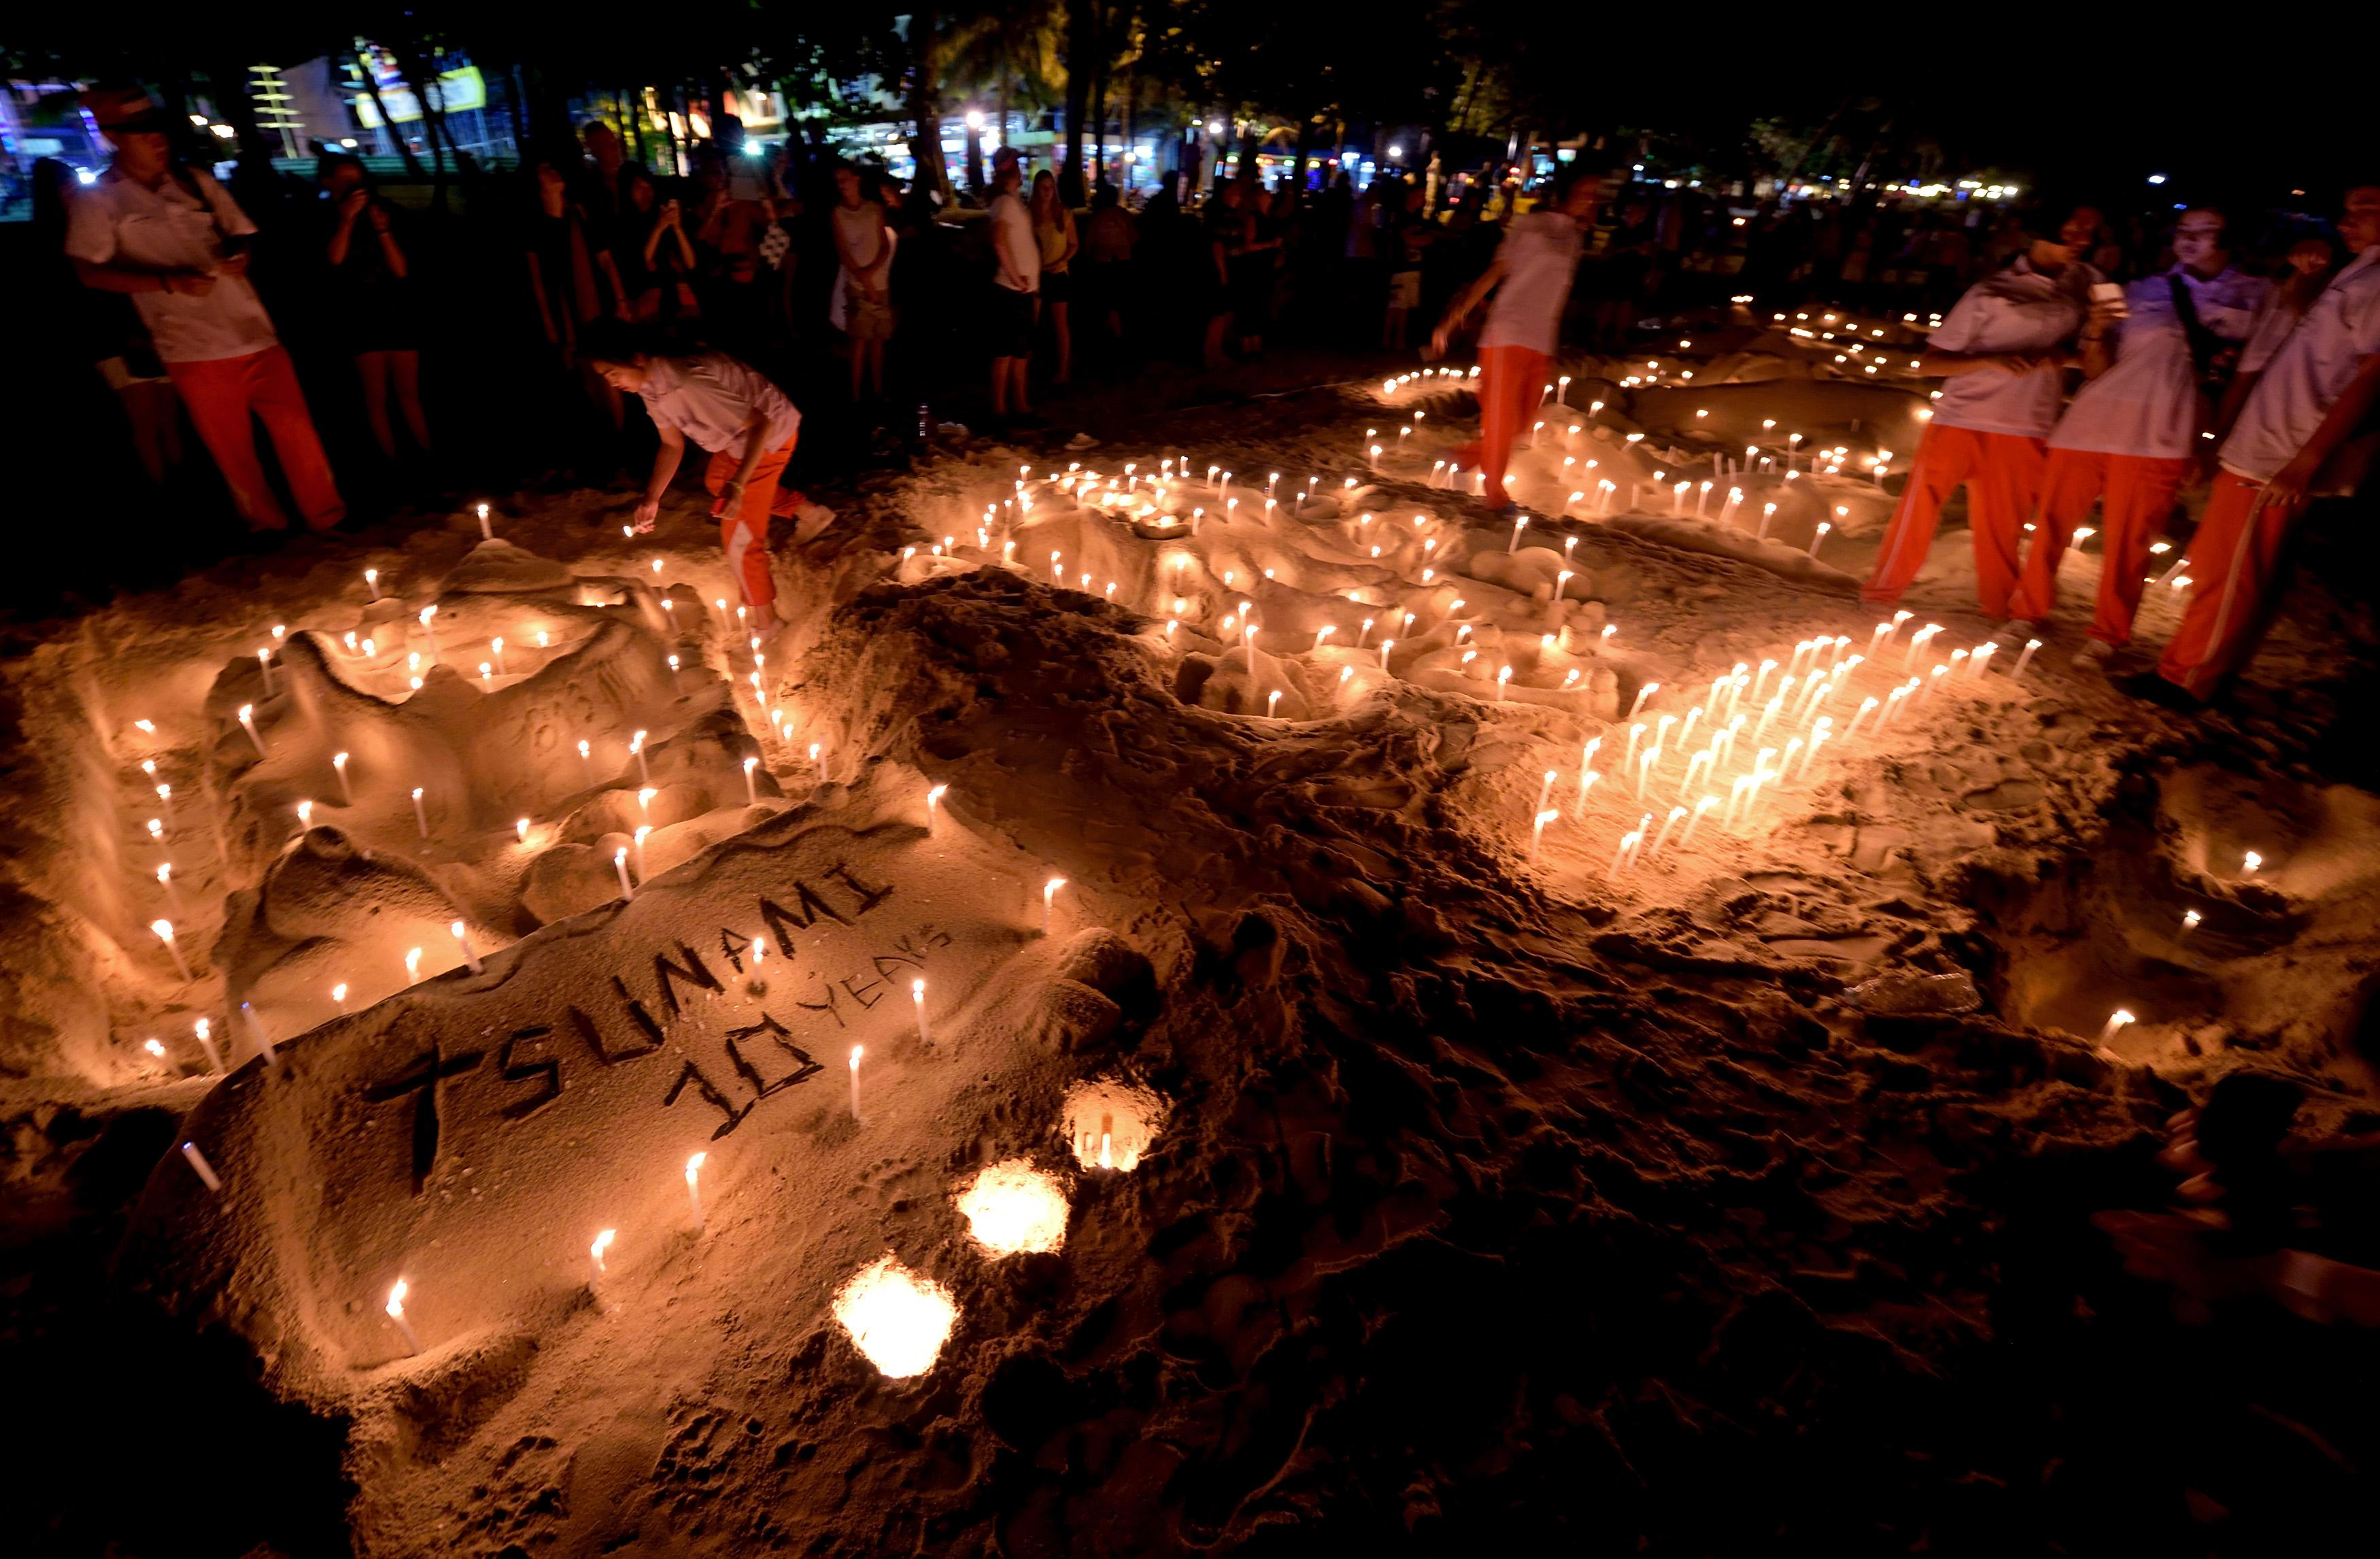 Thai students place candles on a sand sculpture during commemorations on the the tenth anniversary of the 2004 tsunami at Patong beach in Phuket province on December 26, 2014 (AFP Photo/Pornchai Kittiwongsakul)